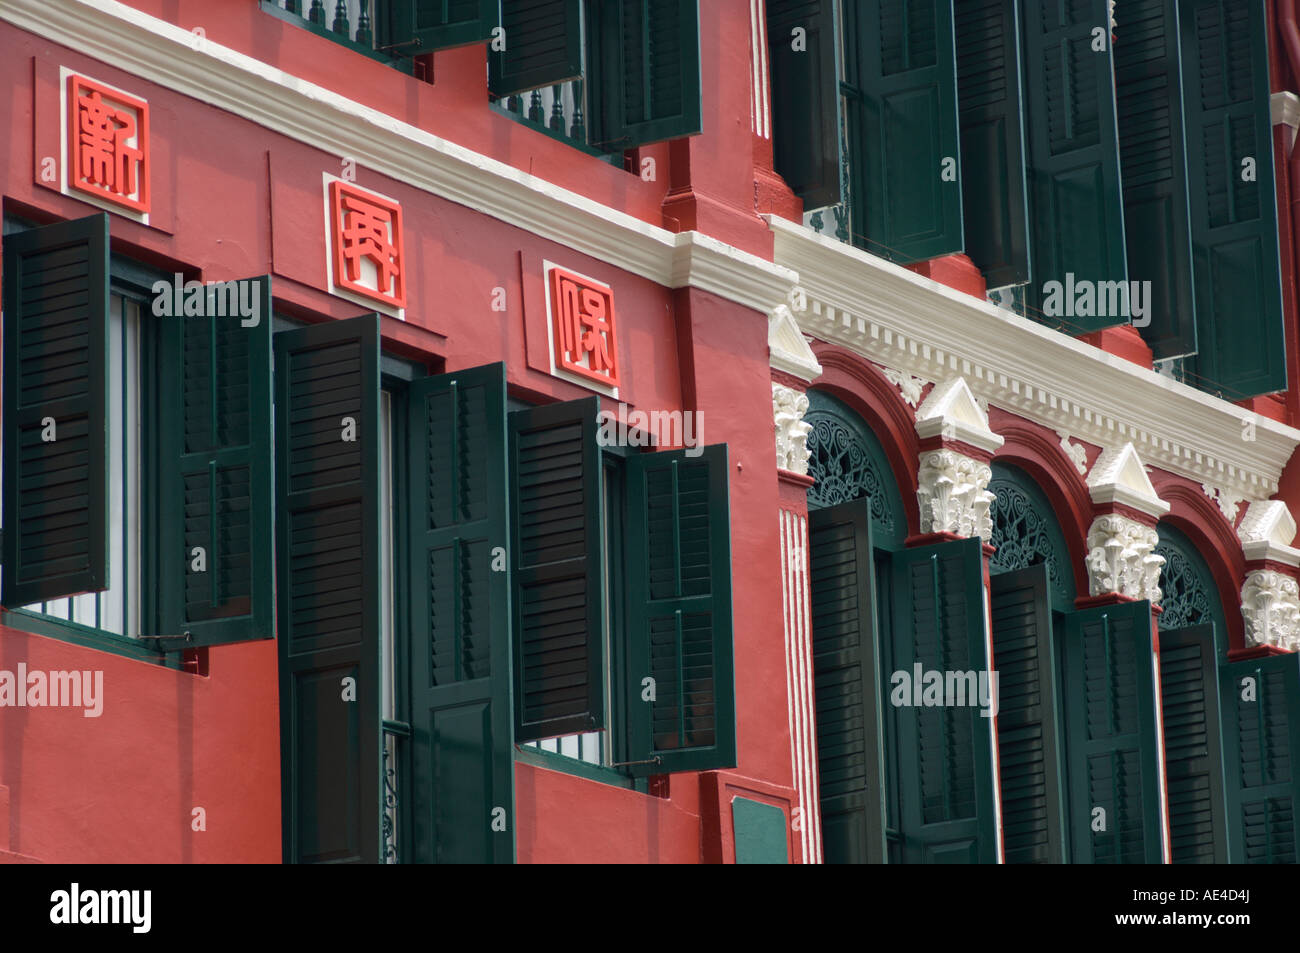 Shutters and windows in Amoy Street, Chinatown, Singapore, Southeast Asia, Asia - Stock Image